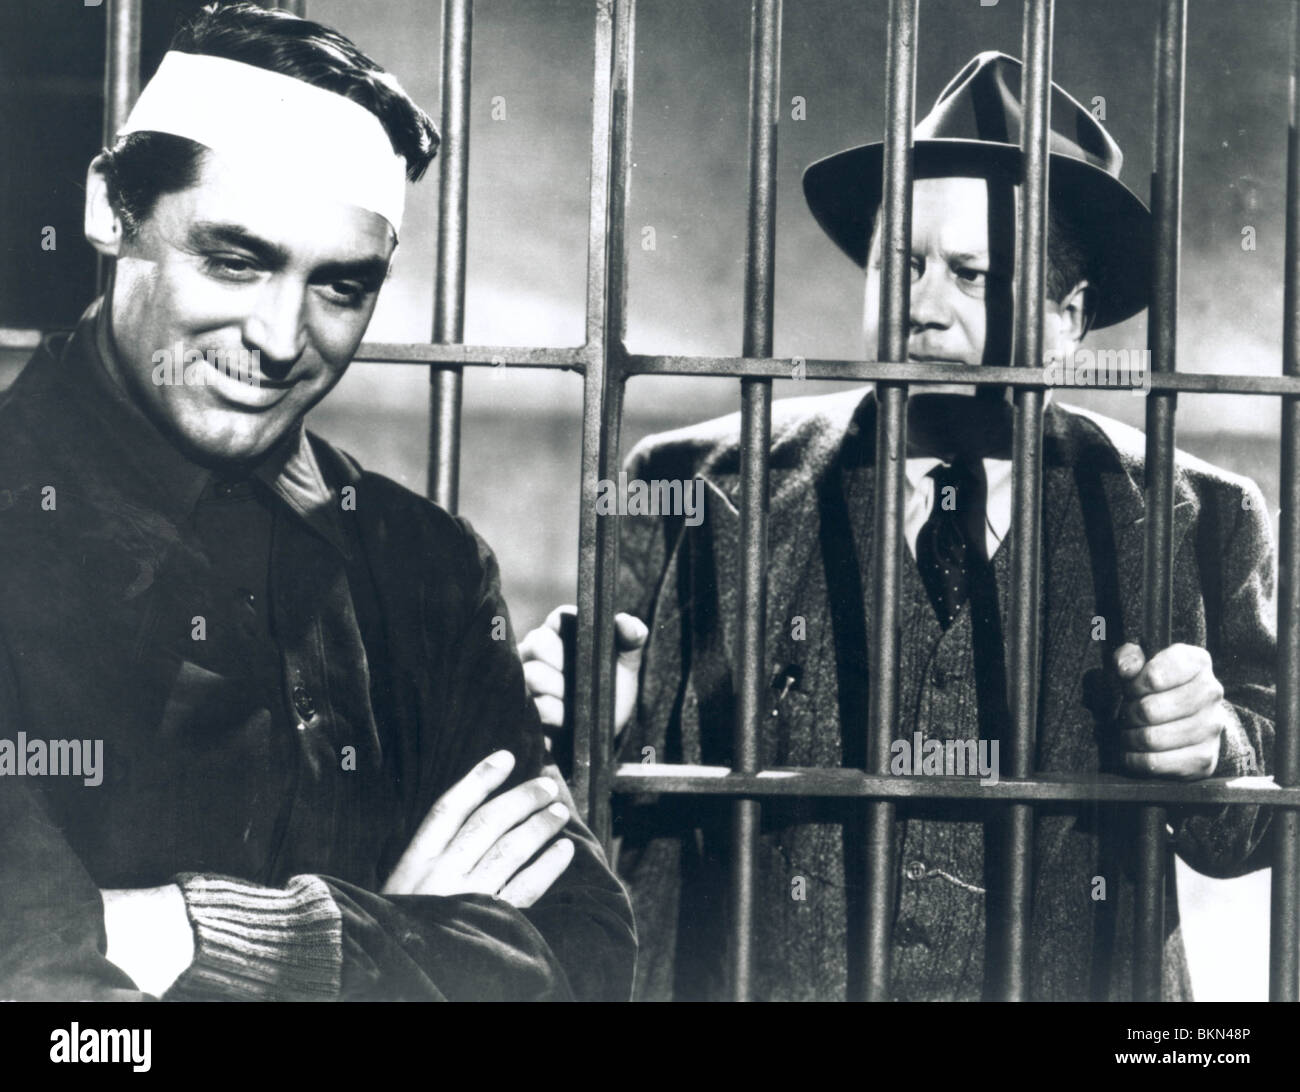 THE TALK OF THE TOWN (1942) CARY GRANT, EDGAR BUCHANAN TOTT 004P - Stock Image